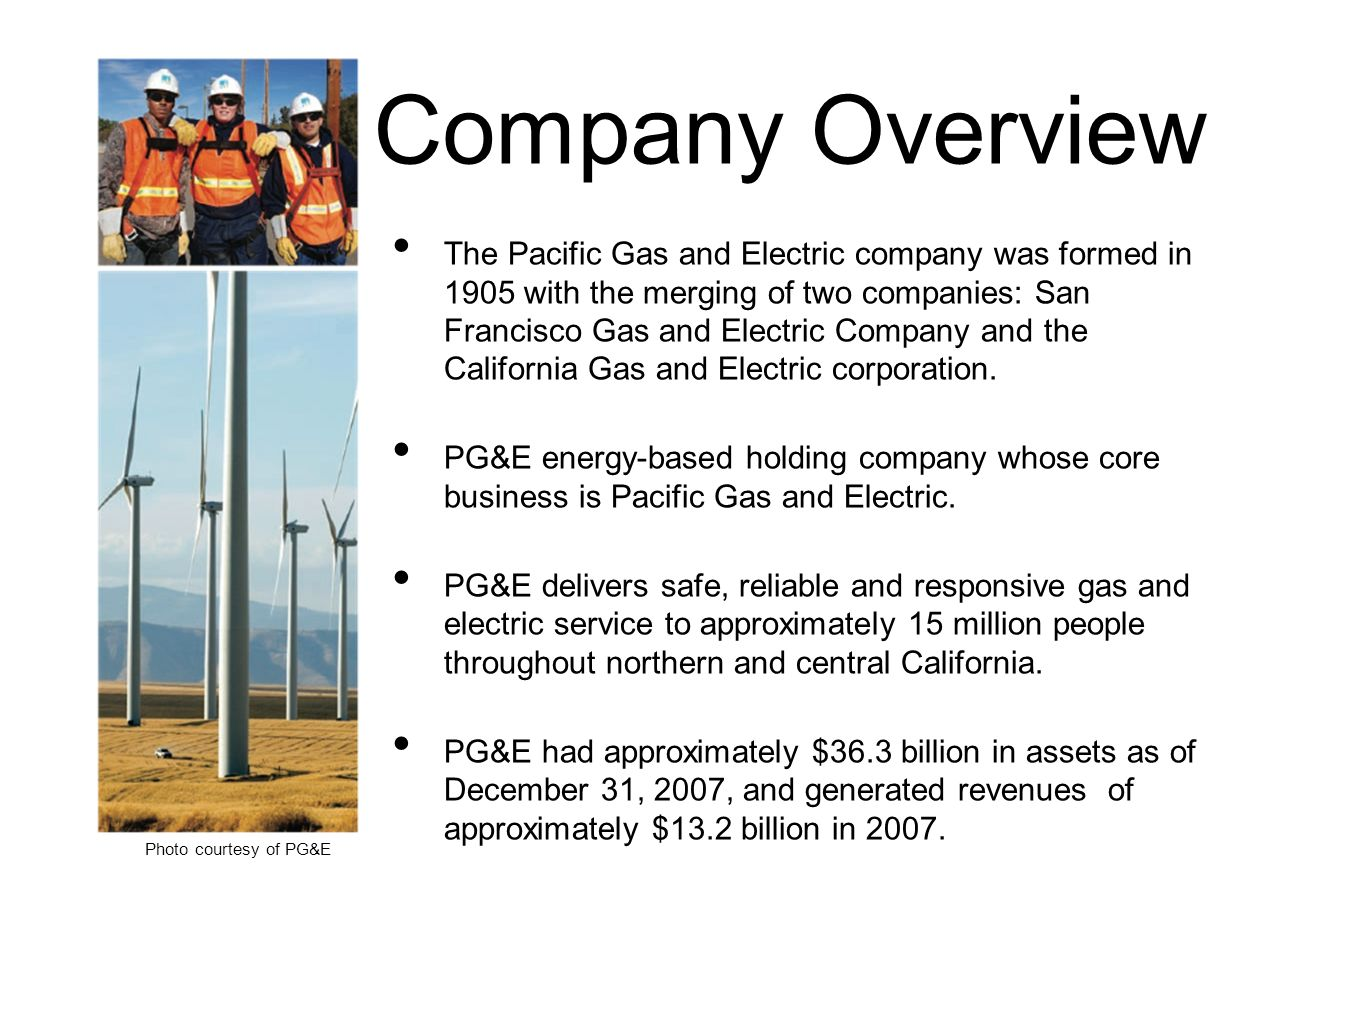 Company Overview The Pacific Gas and Electric company was formed in 1905 with the merging of two companies: San Francisco Gas and Electric Company and the California Gas and Electric corporation.